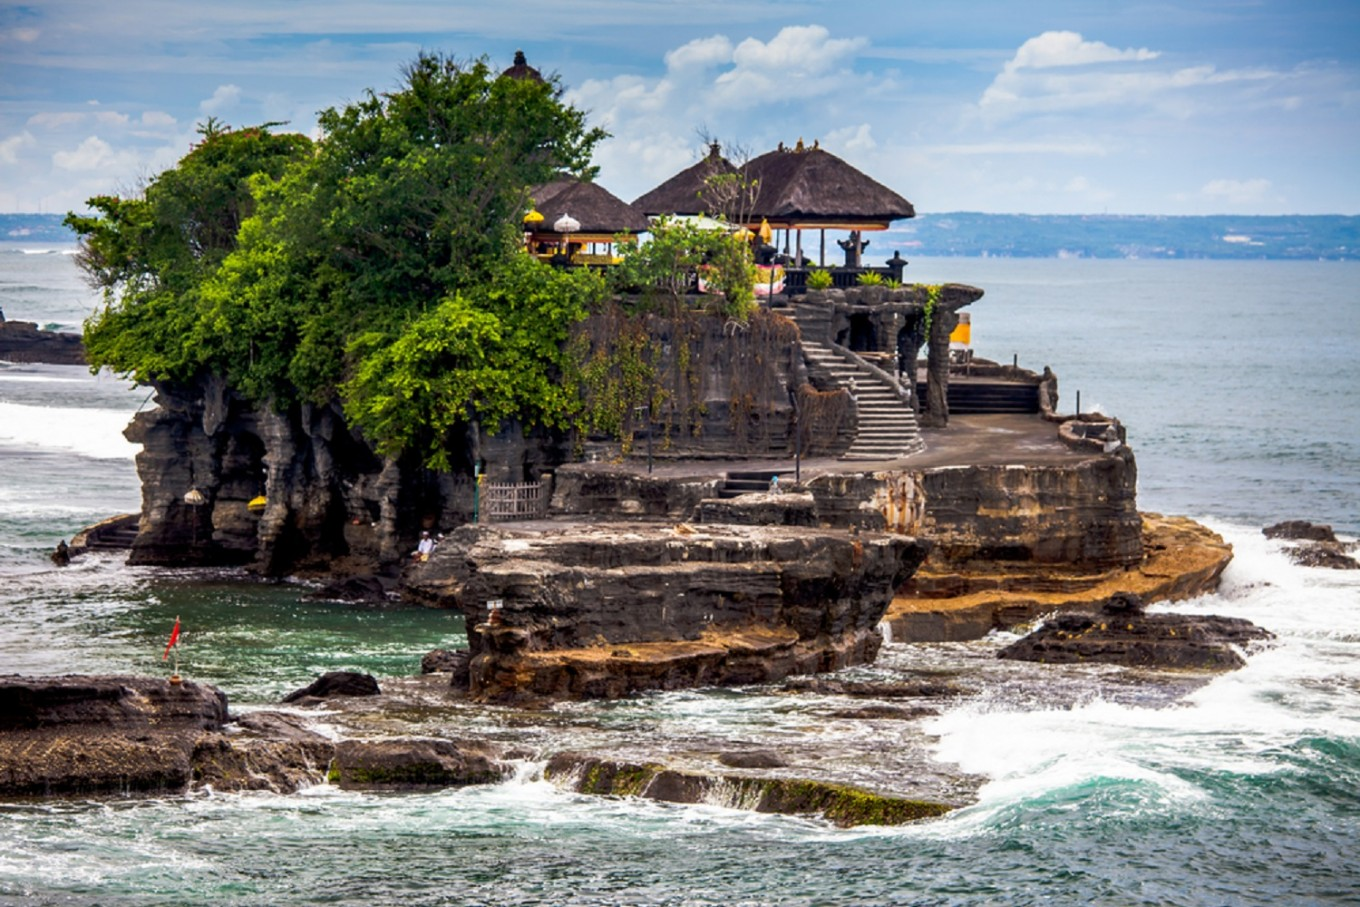 Bali named among top post-pandemic destinations